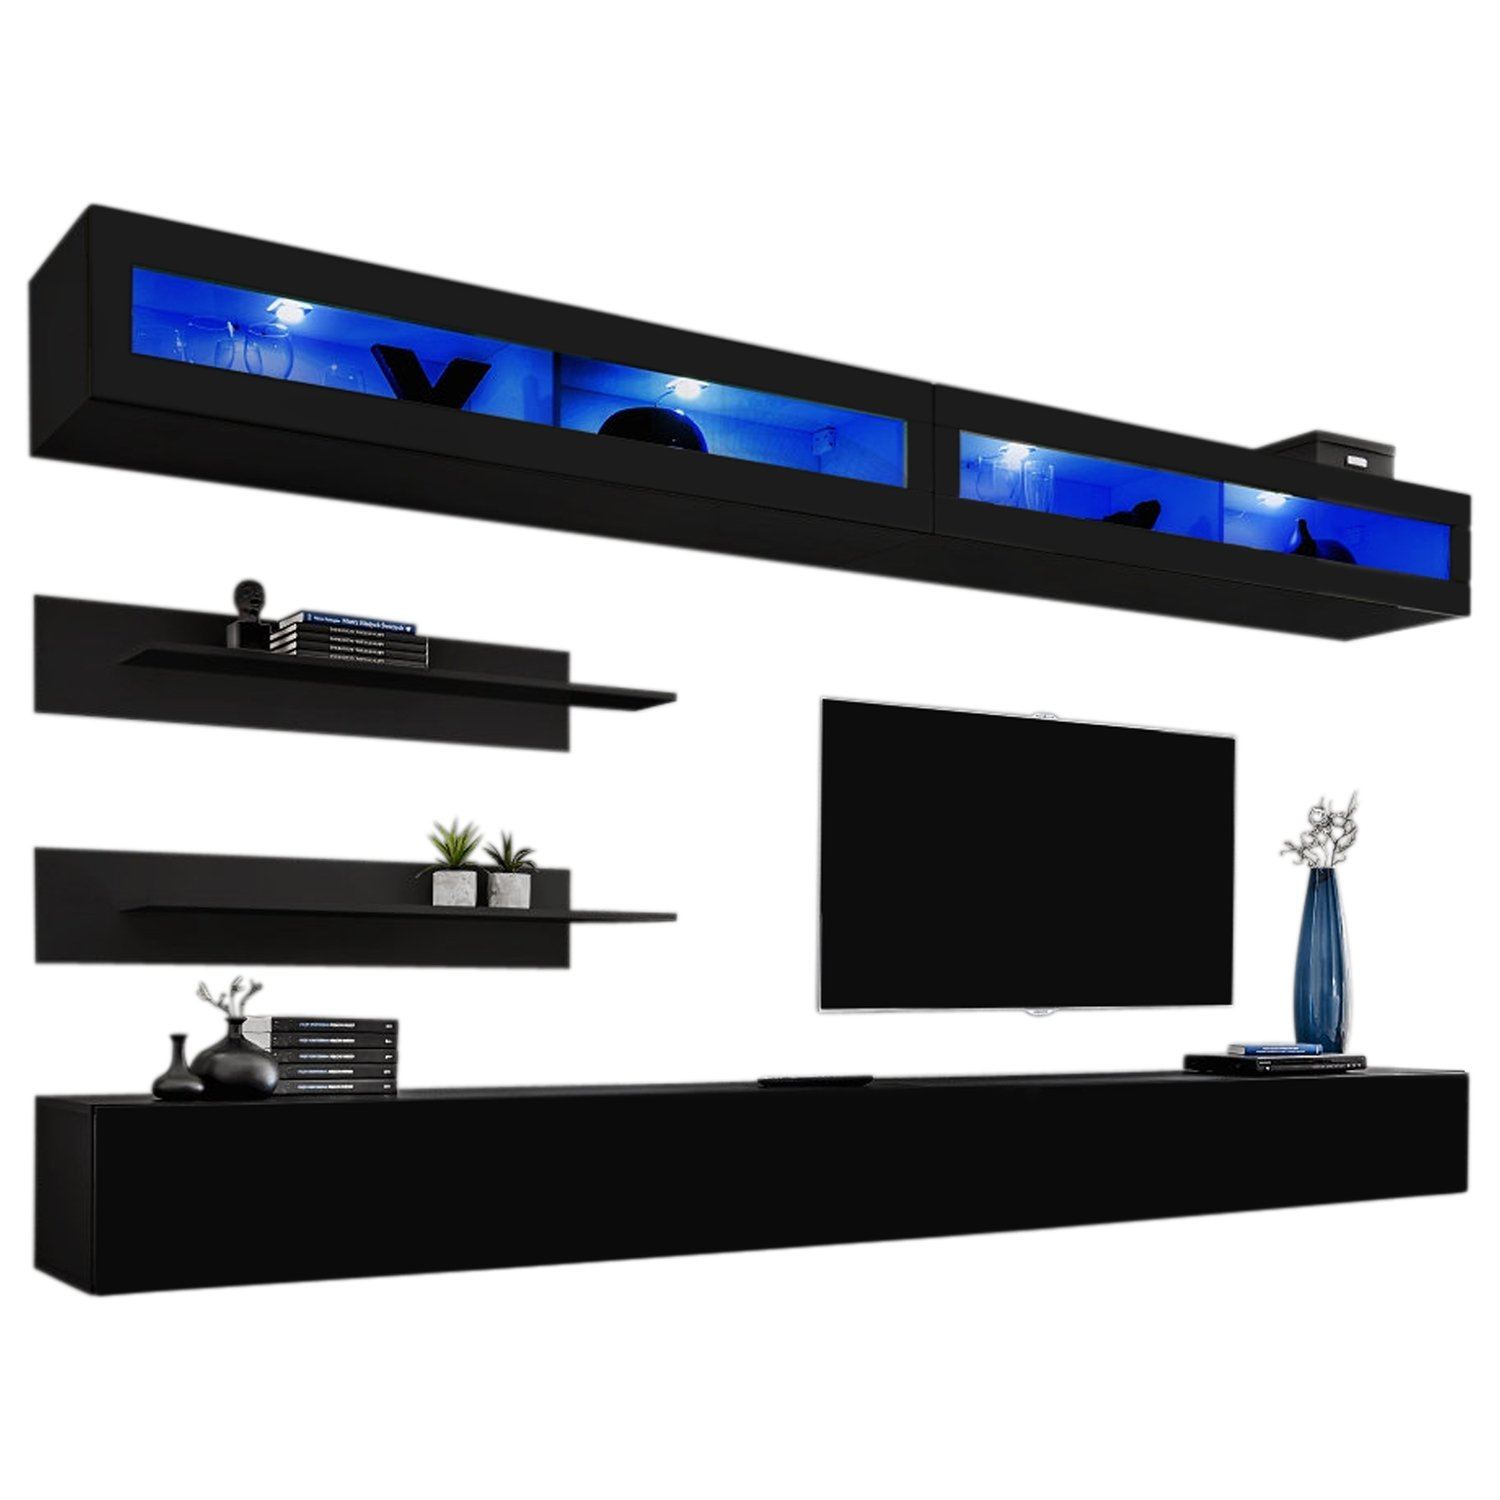 MEBLE FURNITURE & RUGS Wall Mounted Floating Modern Entertainment Center Fly I (Black, I2) by MEBLE FURNITURE & RUGS